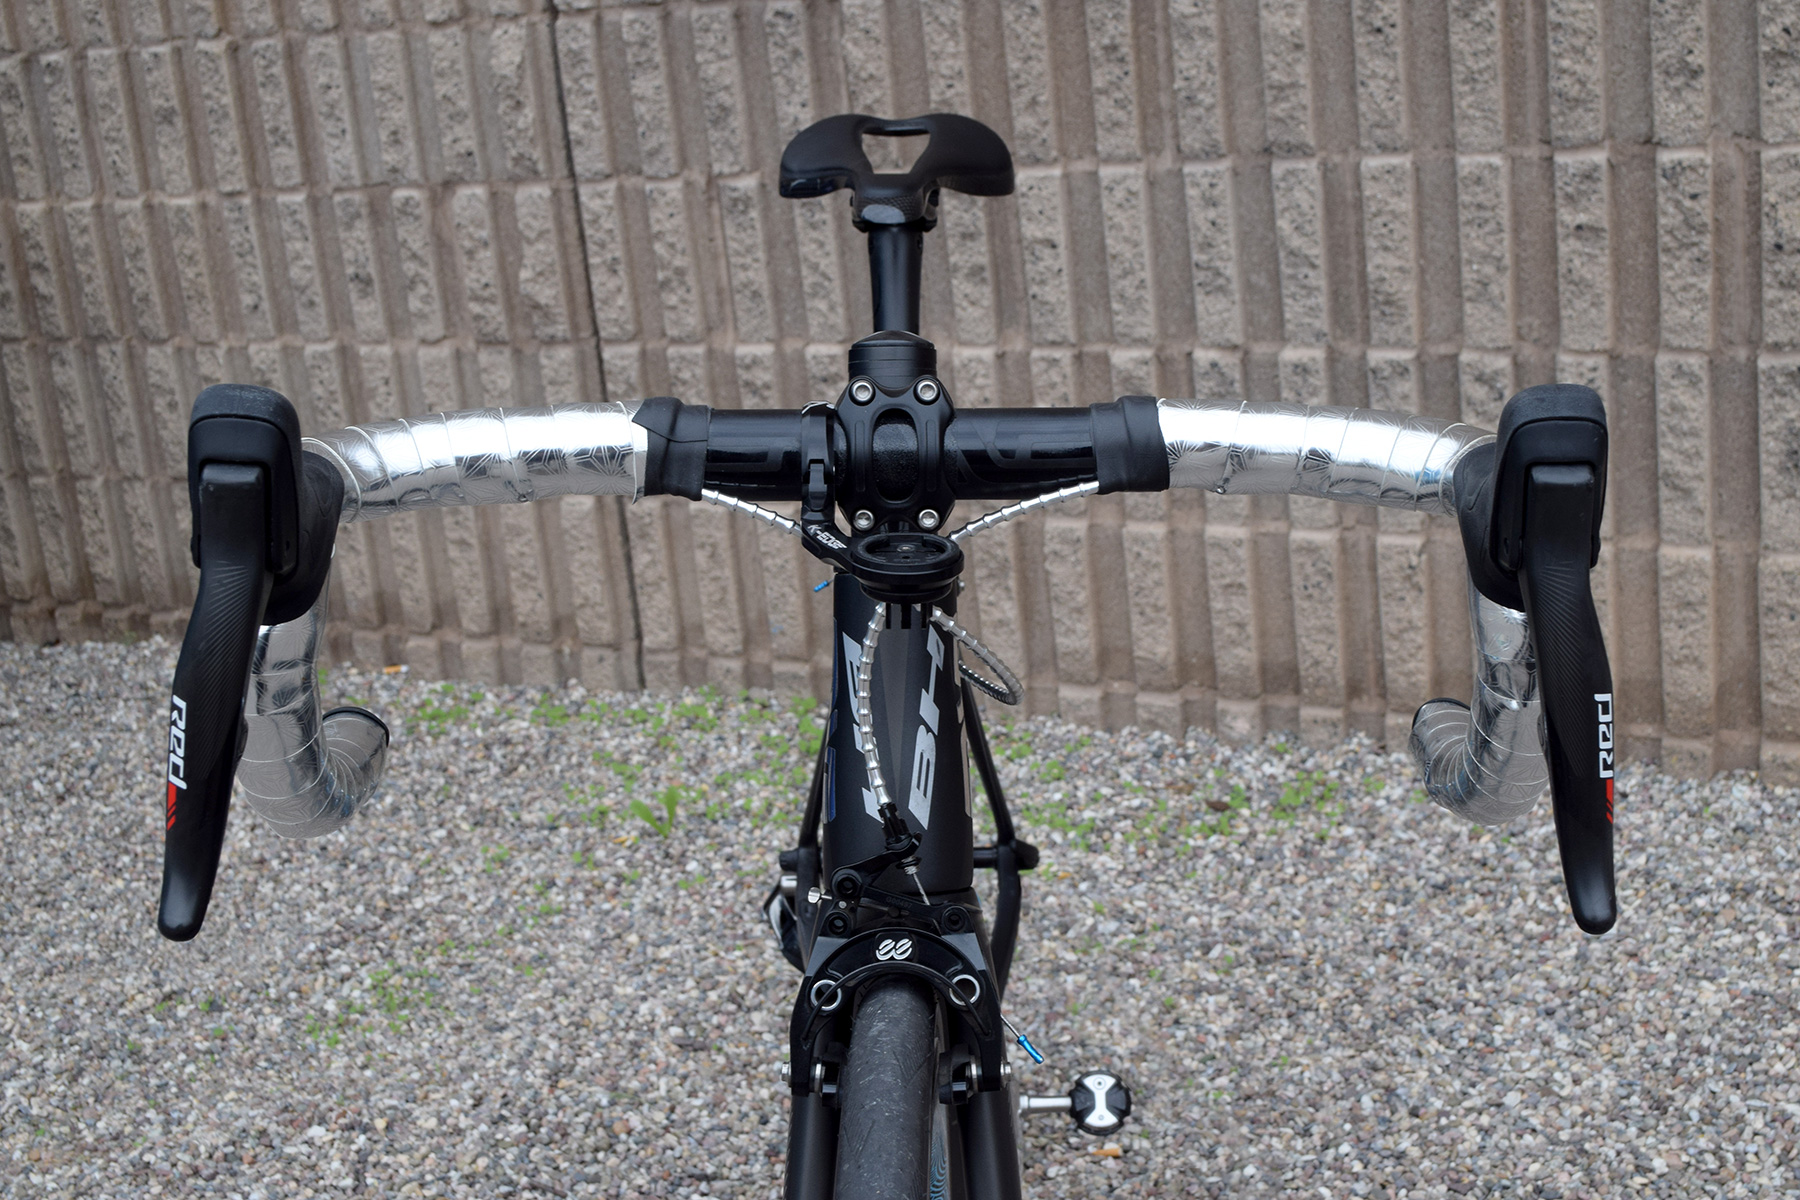 BH UltraLight Evo Cockpit Front View